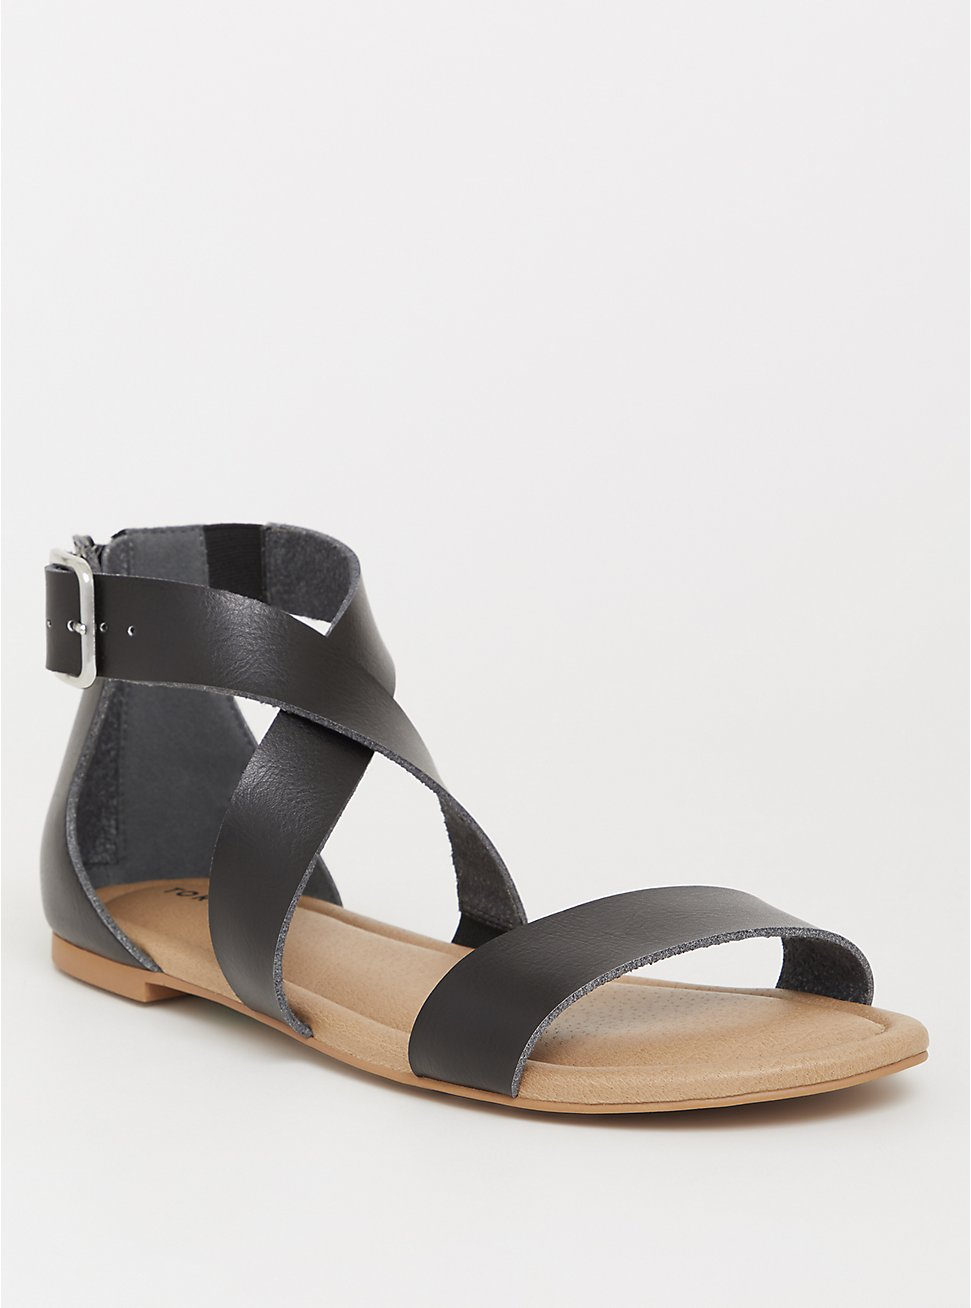 Black Crisscross Gladiator Sandal (WW), BLACK, hi-res